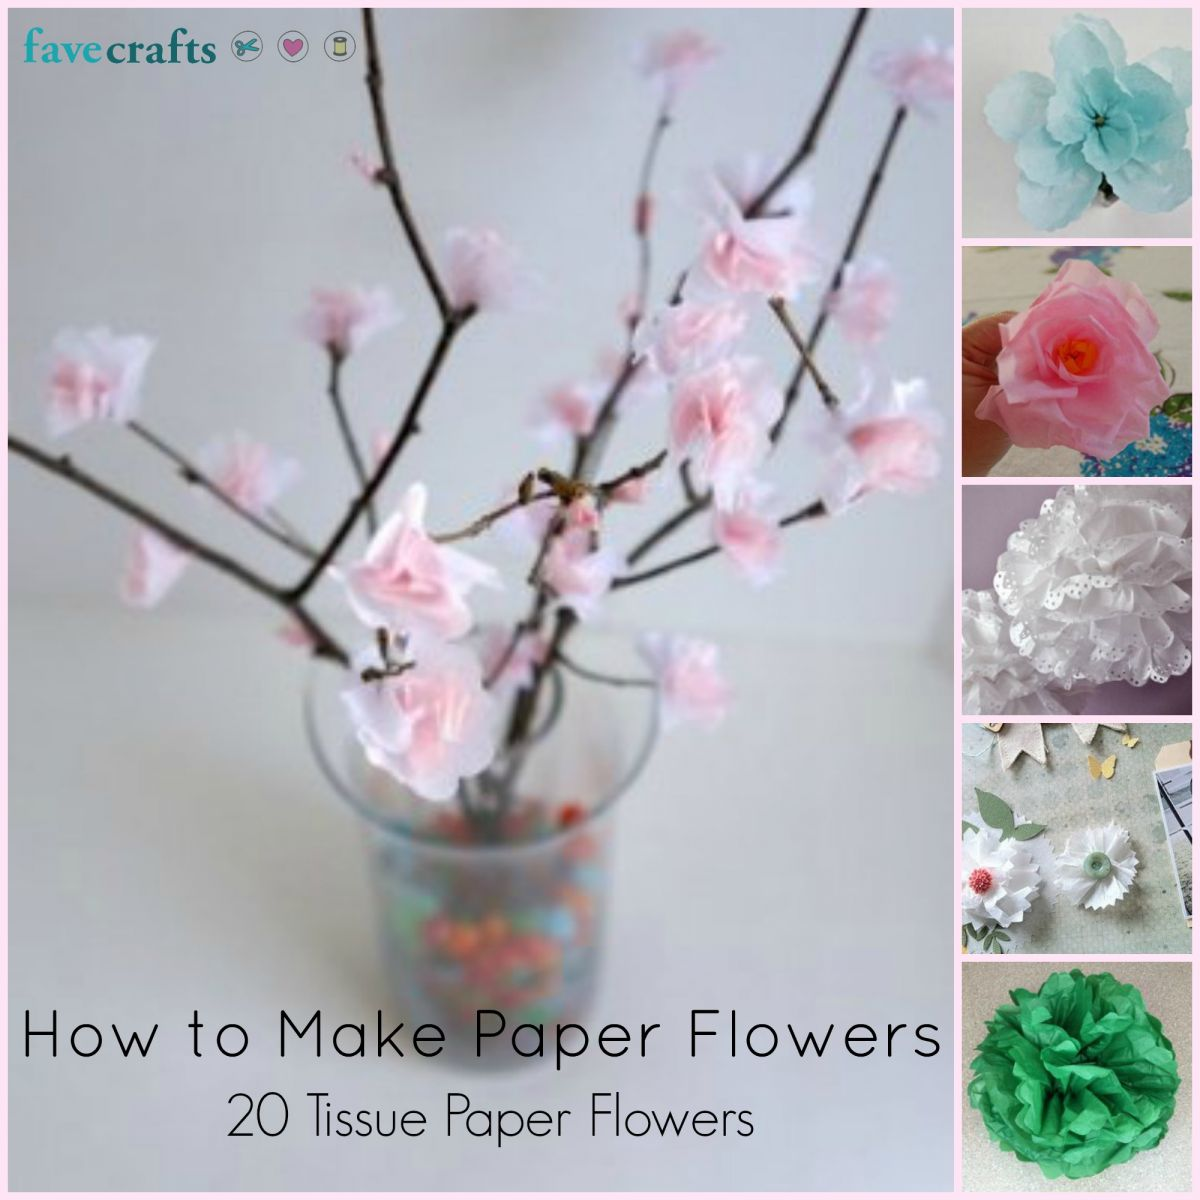 http://www.favequilts.com/master_images/Papercraft/how-to-make-paper-flowers.jpg